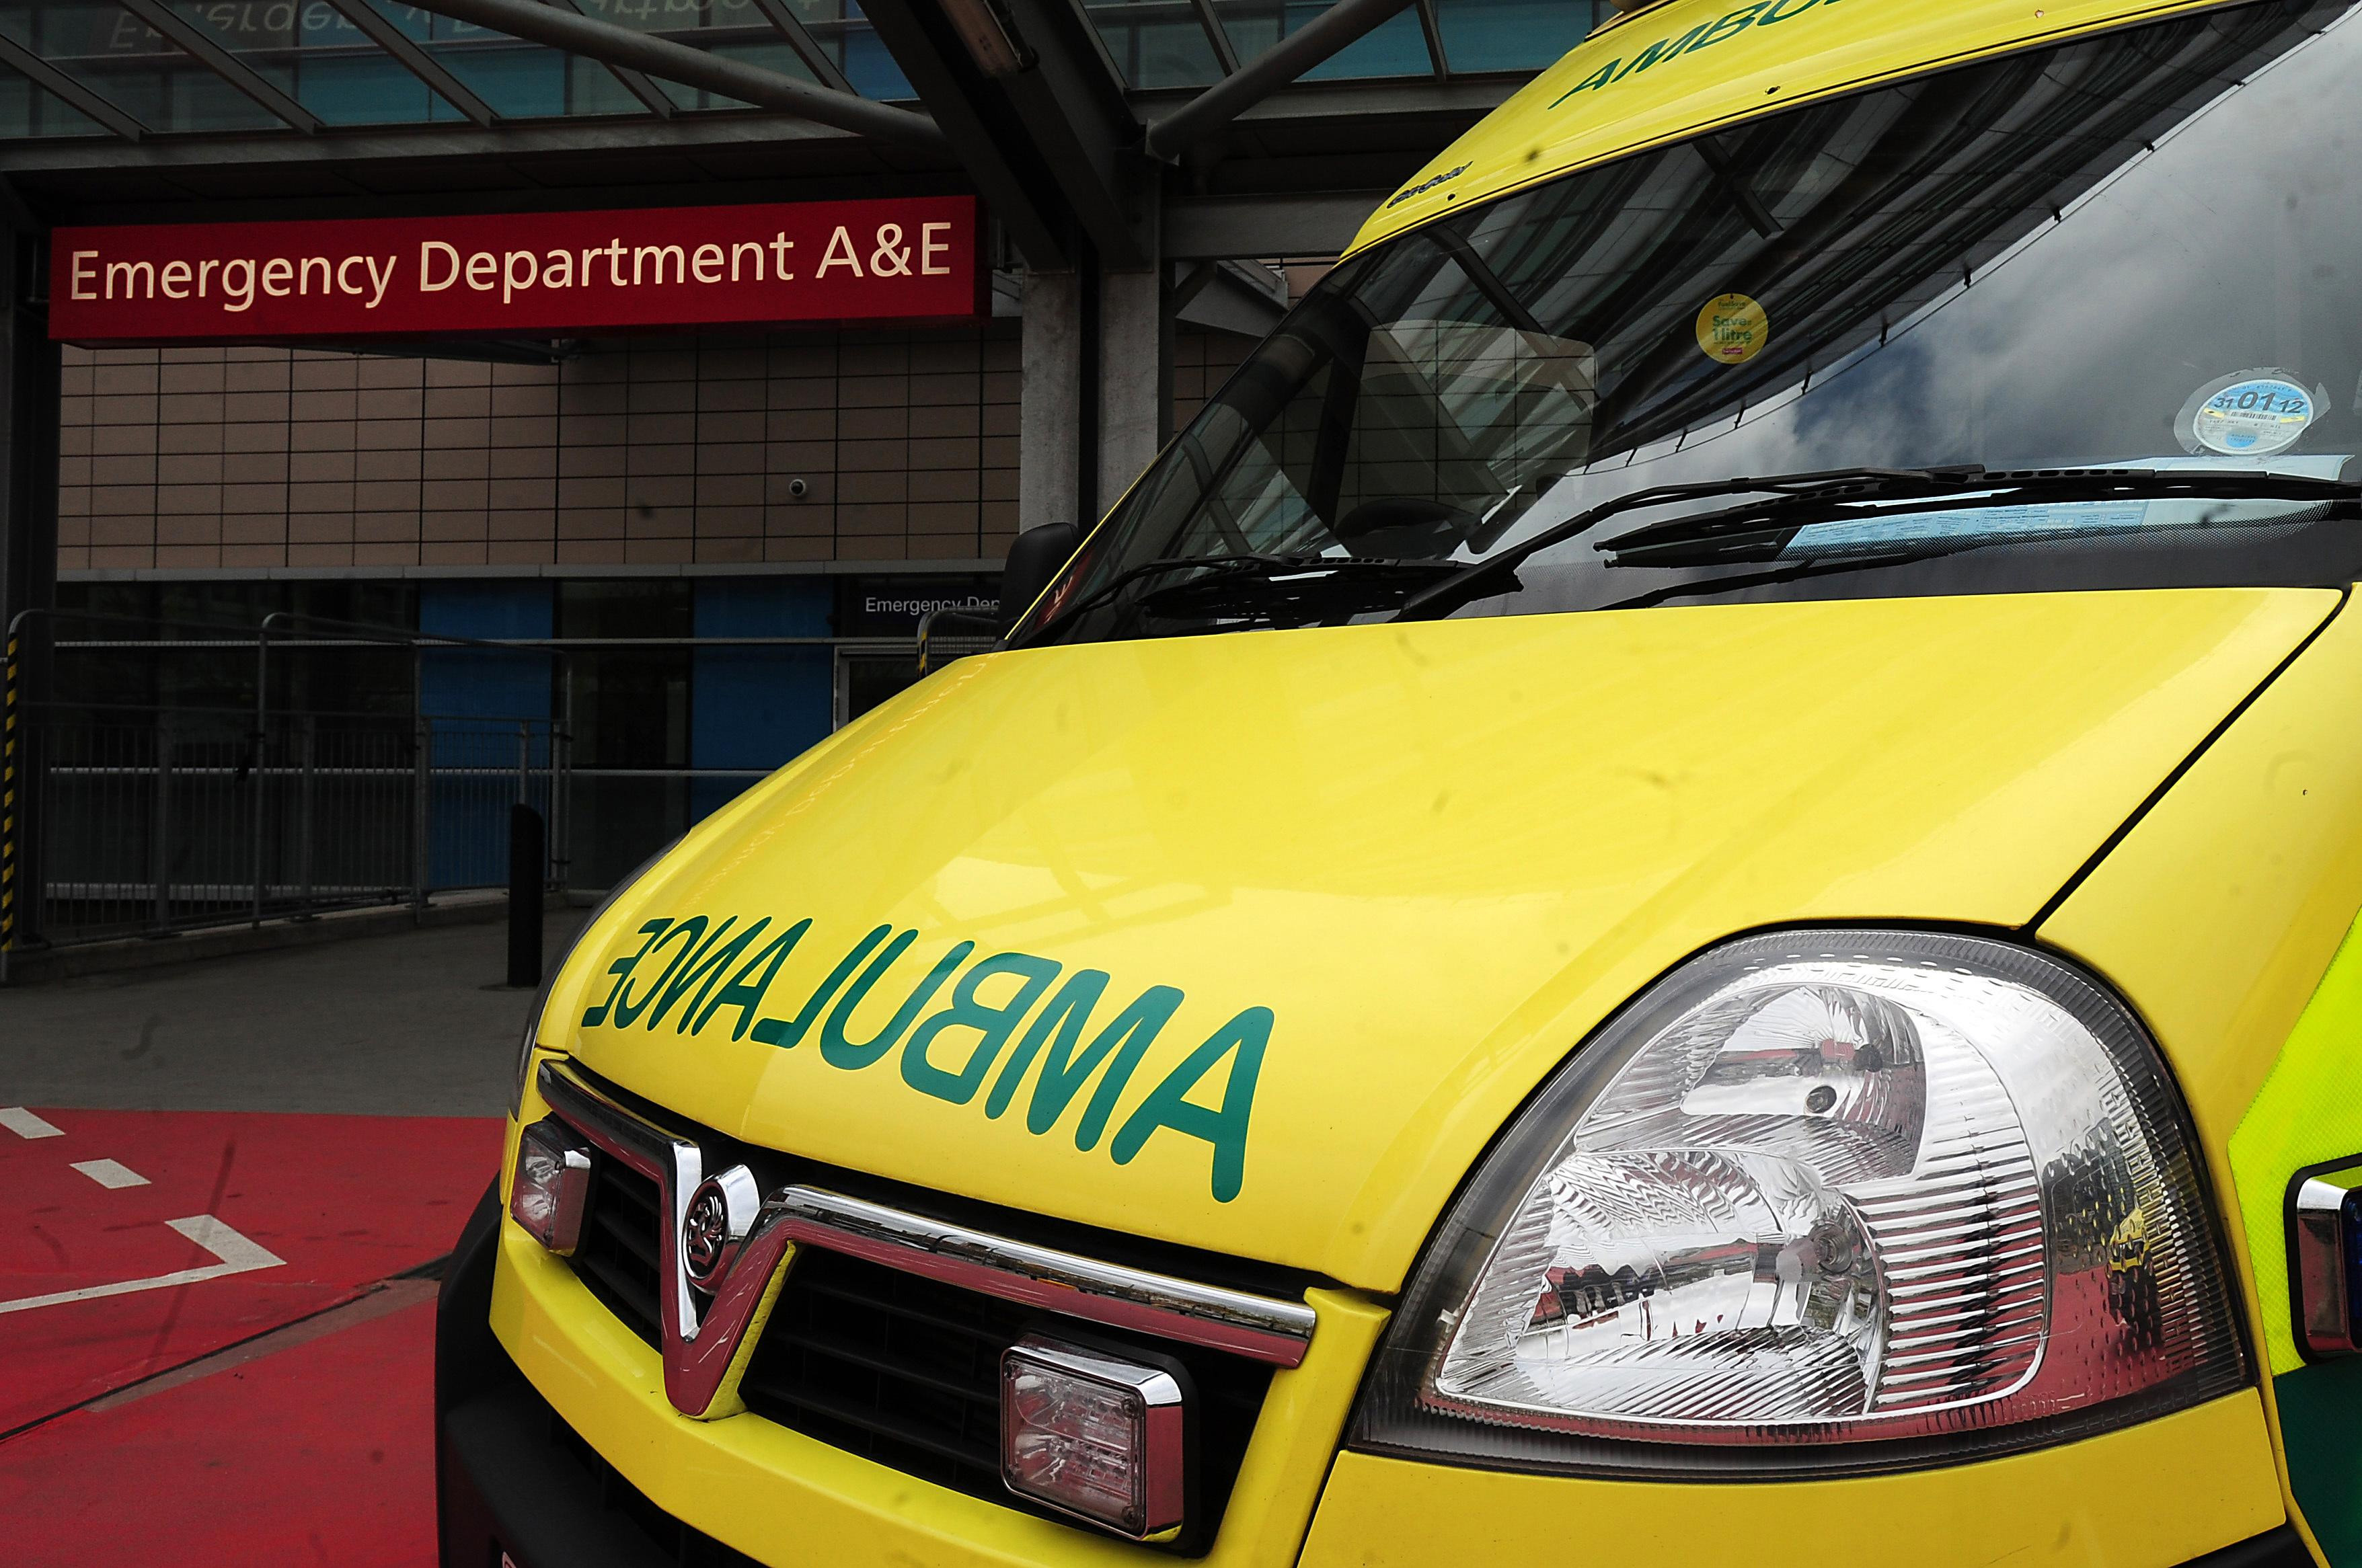 The ambulance was on its way to Royal Bolton Hospital when a wheel fell off. The paramedic prevented the vehicle from rolling over (Picture: PA)